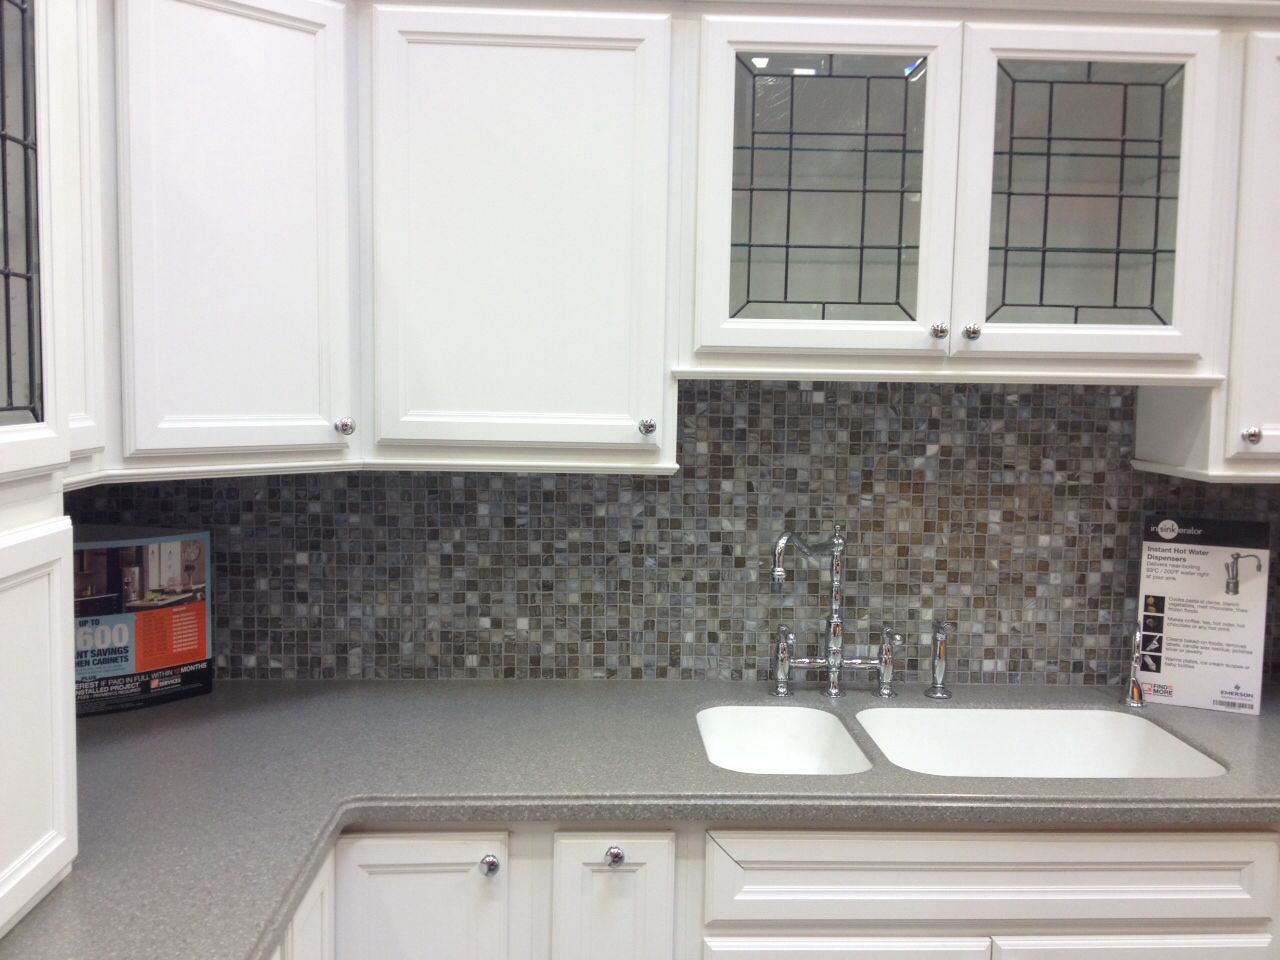 Tile backsplash home depot new house pinterest Kitchen backsplash ideas bhg